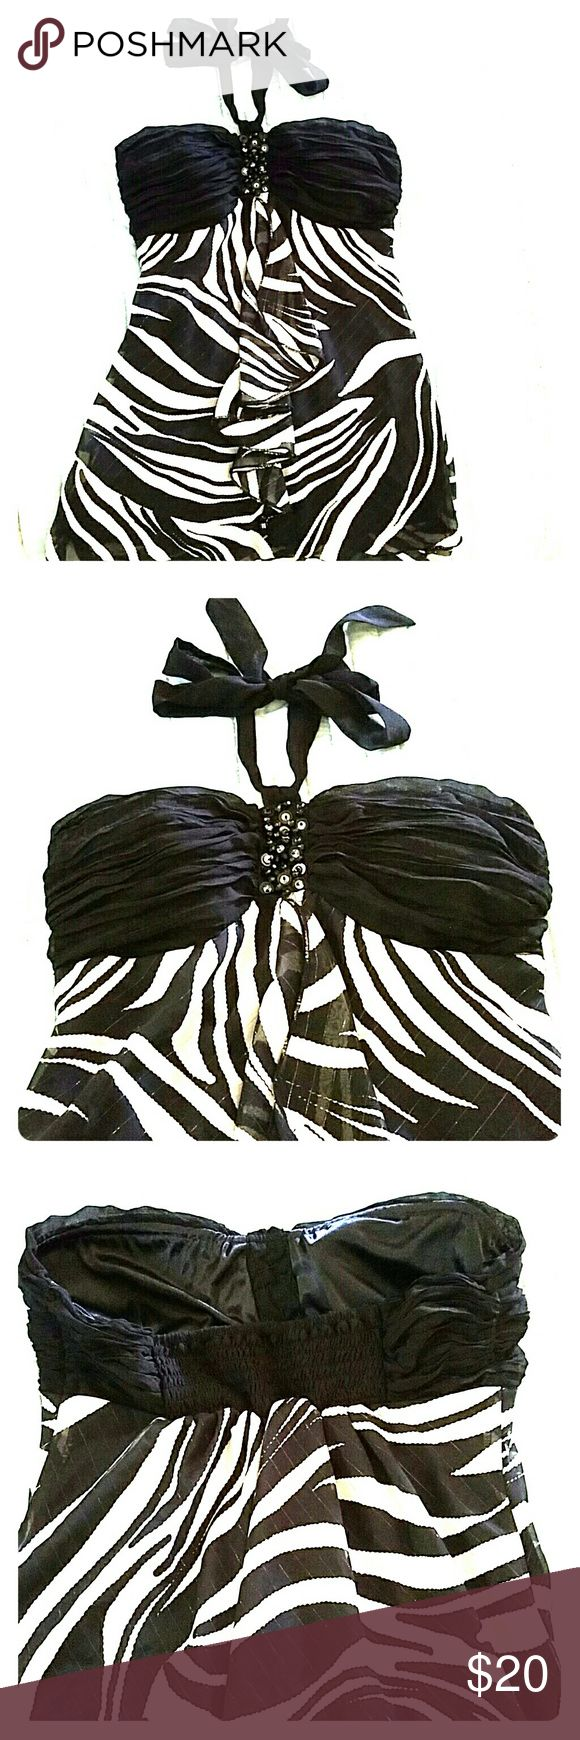 Zebra halter top Ready for summer? This top can either be dressed up where with a black pencil skirt or jeans and heels. marine blu Tops